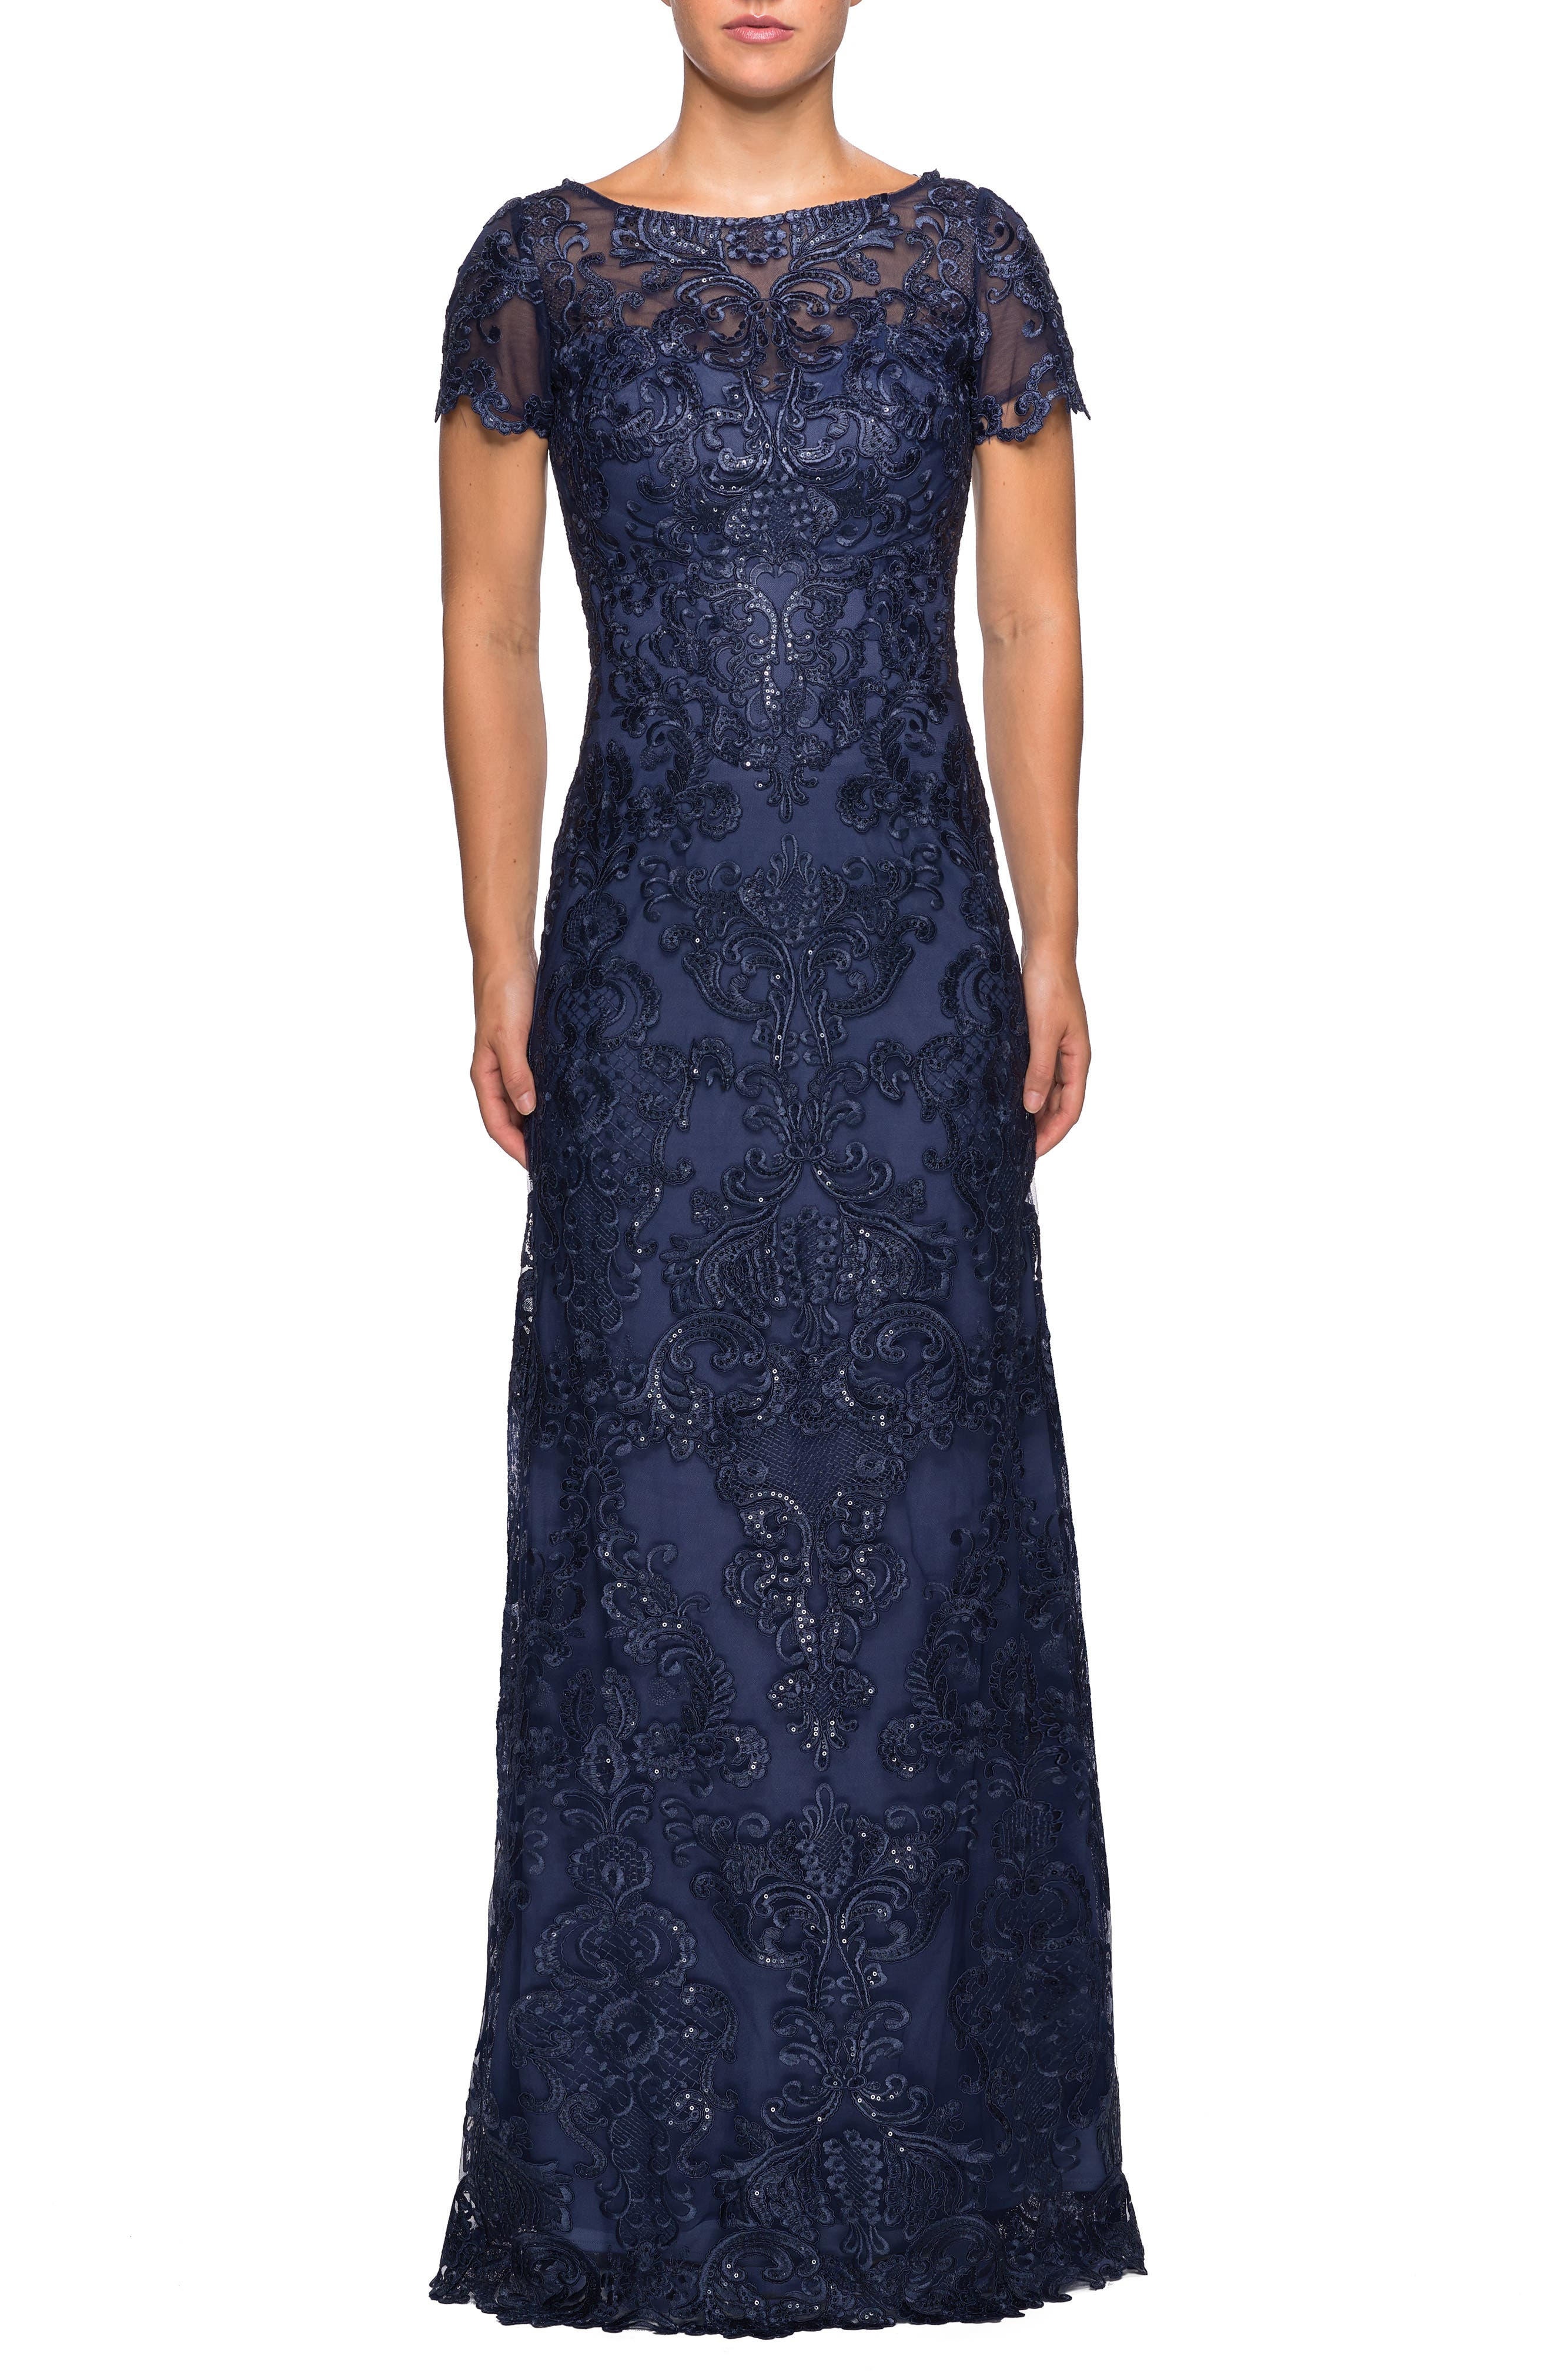 La Femme Sequin Embroidered Column Dress, Blue